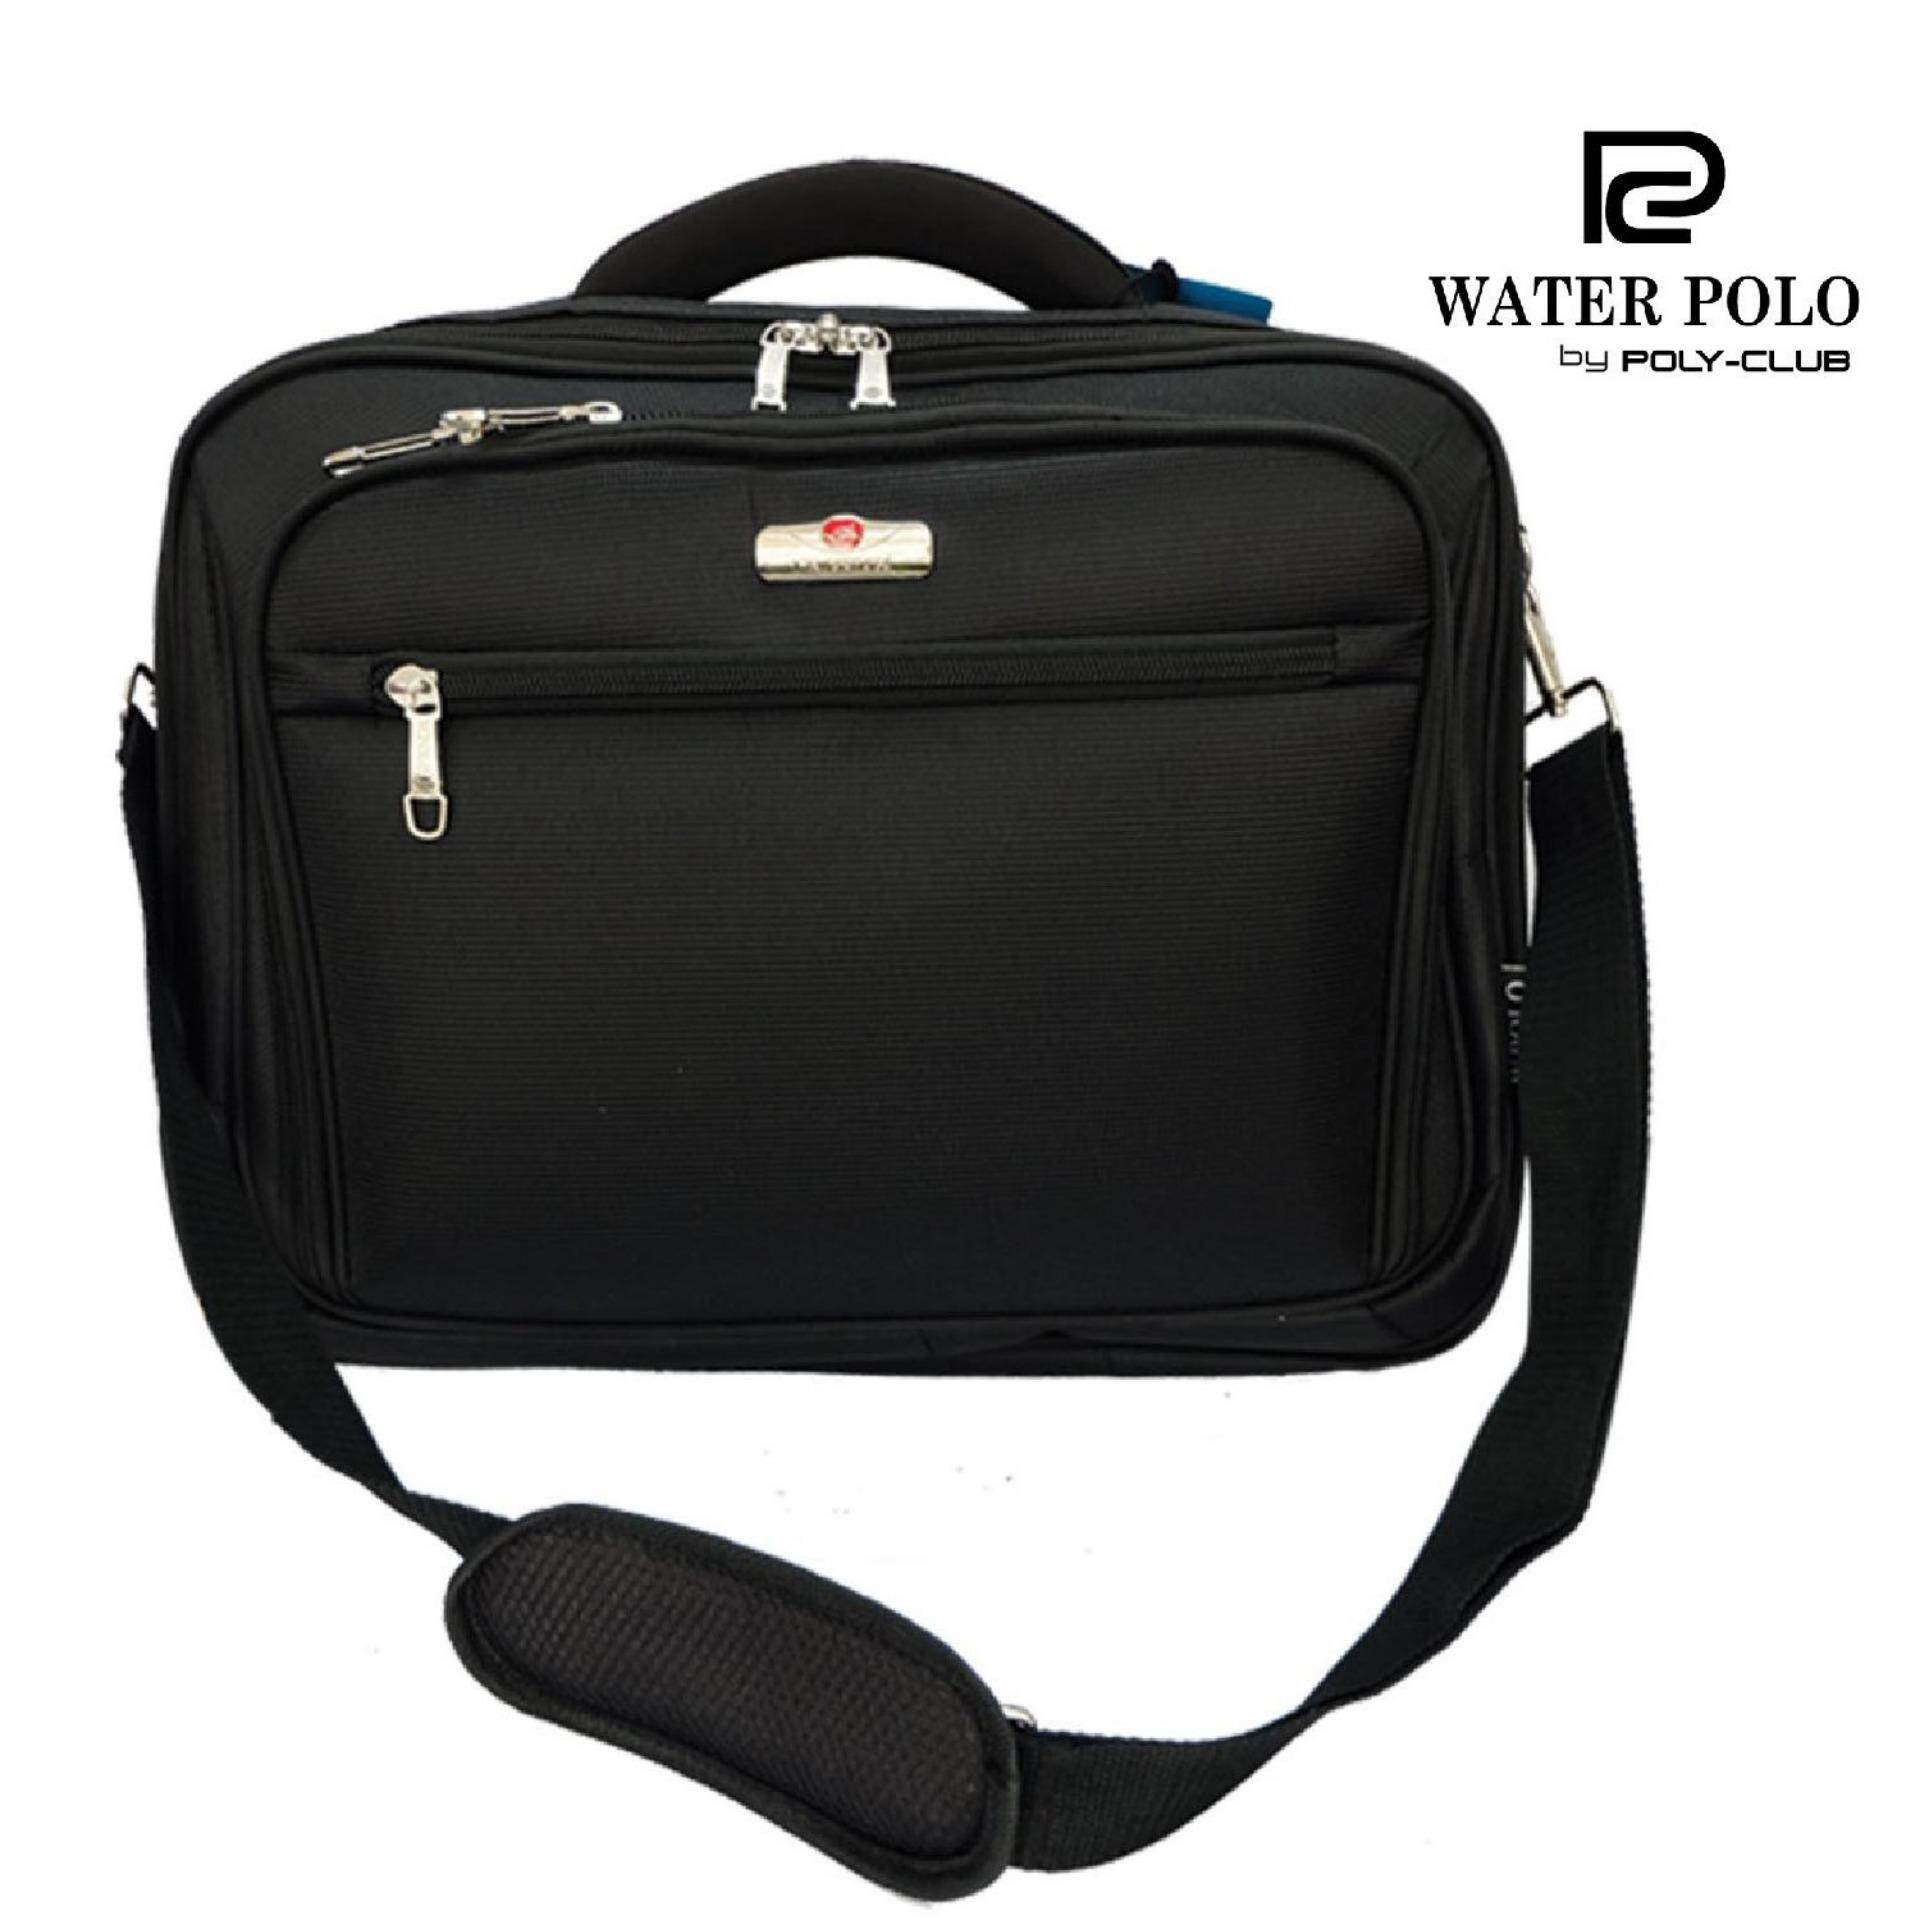 Waterpolo Hard-side Document Bag -WD9406 Black